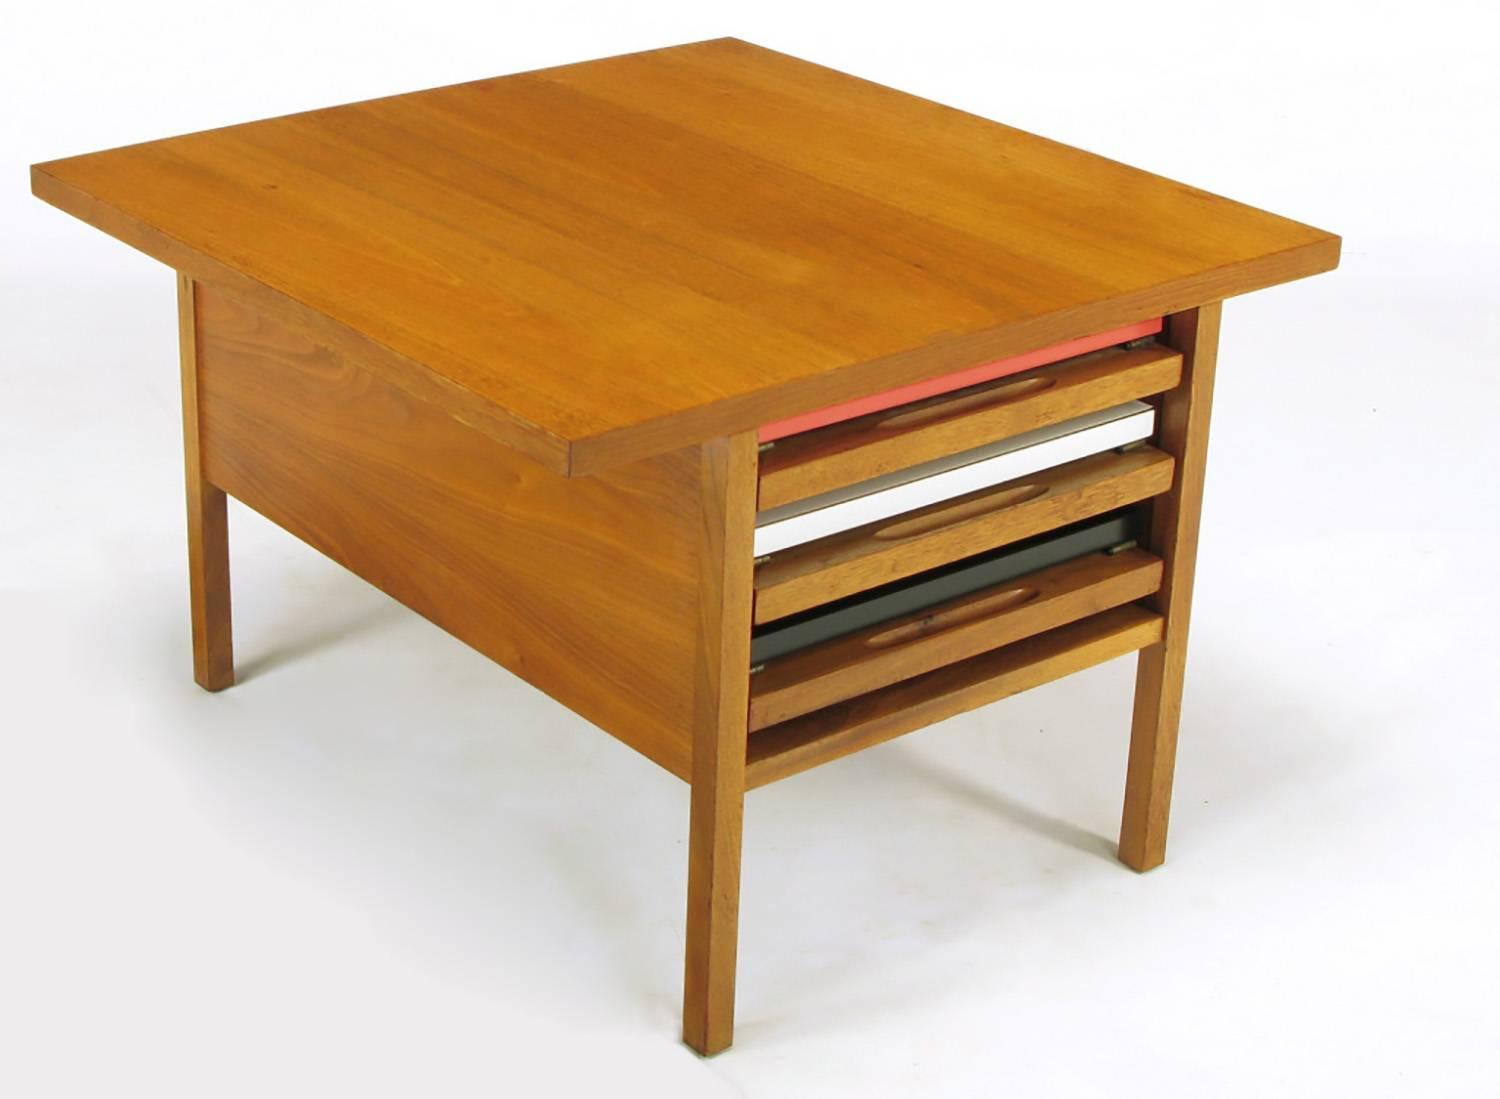 John keal walnut coffee table with three folding side tables for sale at 1stdibs Folding coffee table